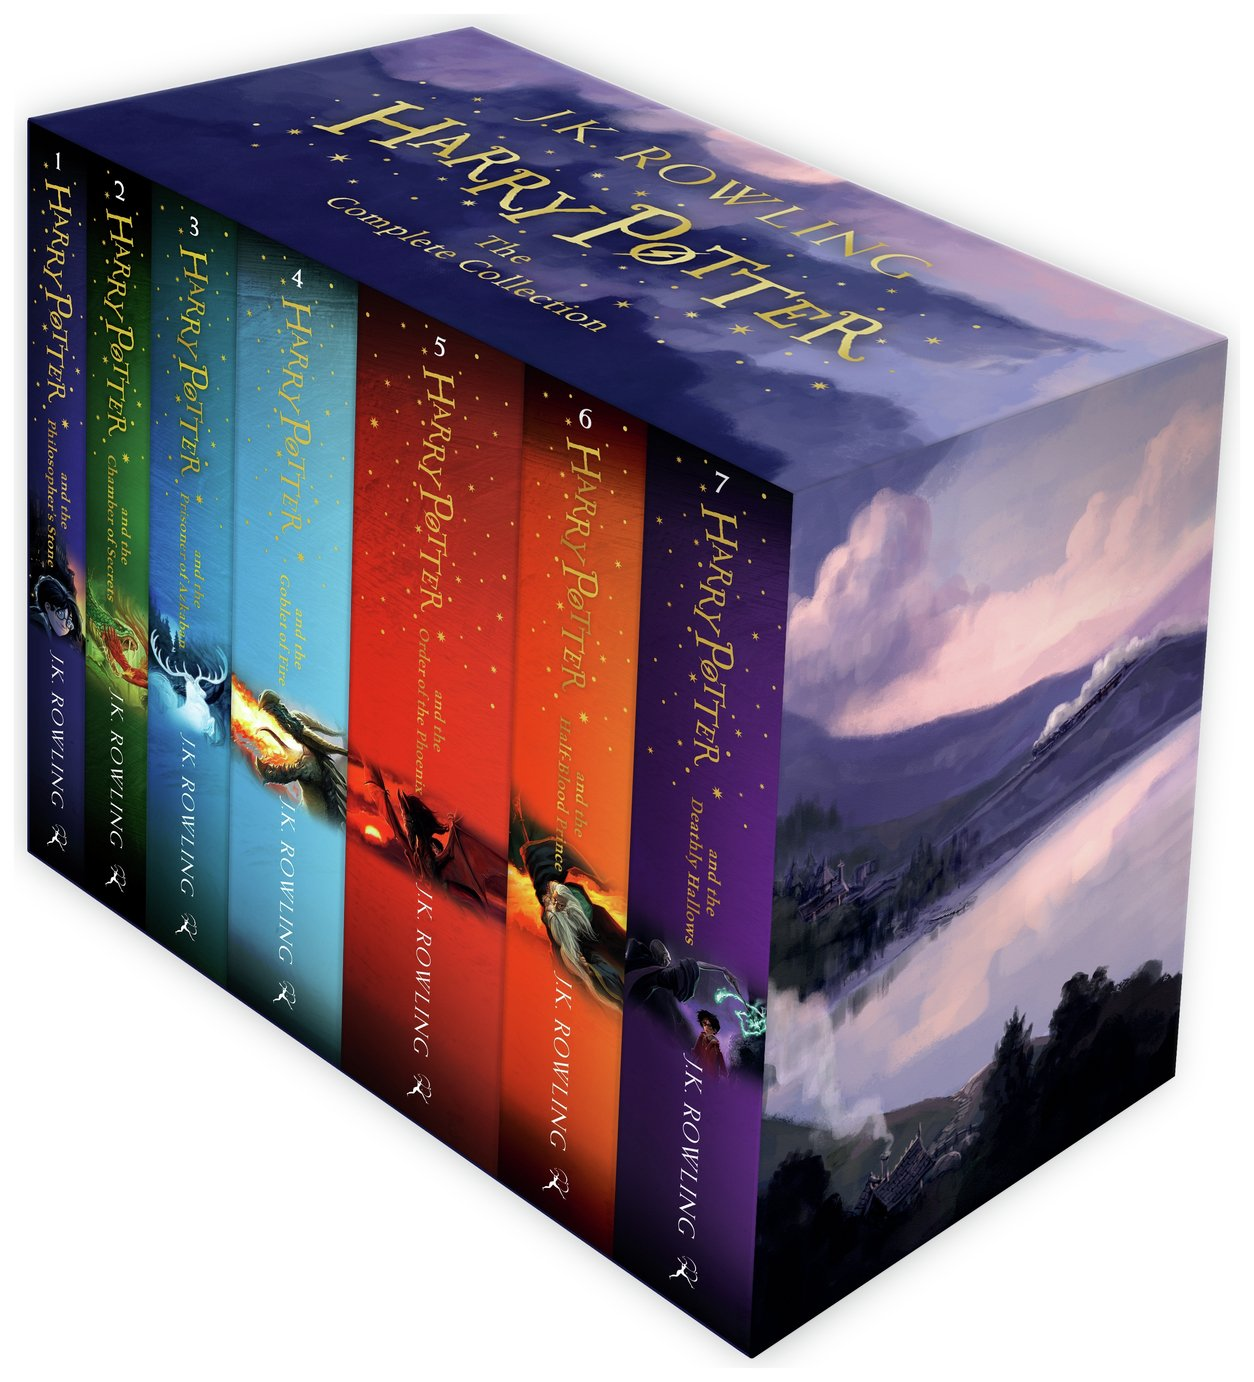 Harry Potter: The Complete Collection Paperback Box Set